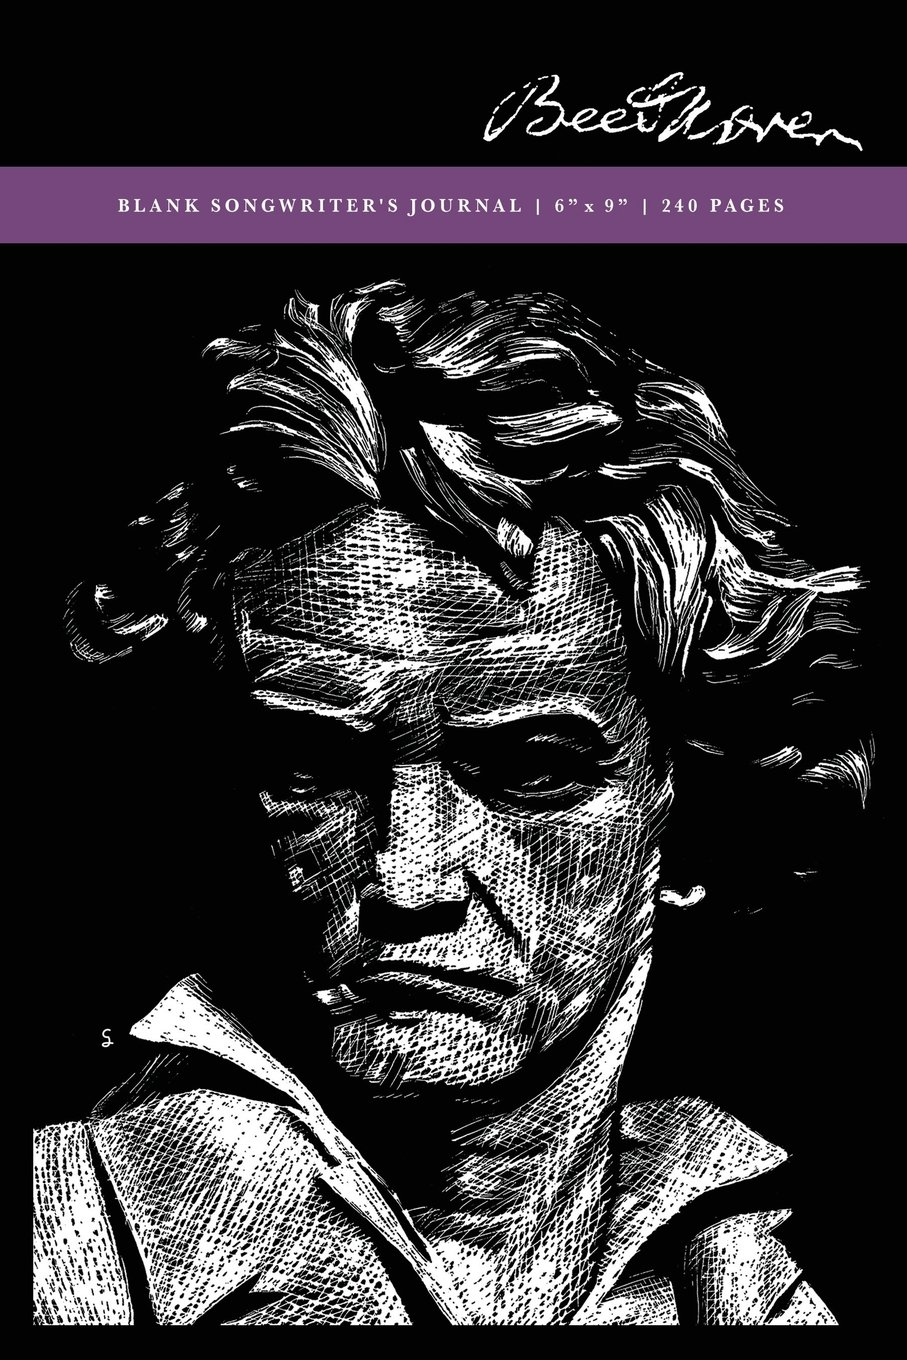 Beethoven: Blank Songwriter's Journal 6x9: 240 Creme Pages (120 spreads) college ruled + music staff paper / Notebook for Artists, Writers + Musicians pdf epub